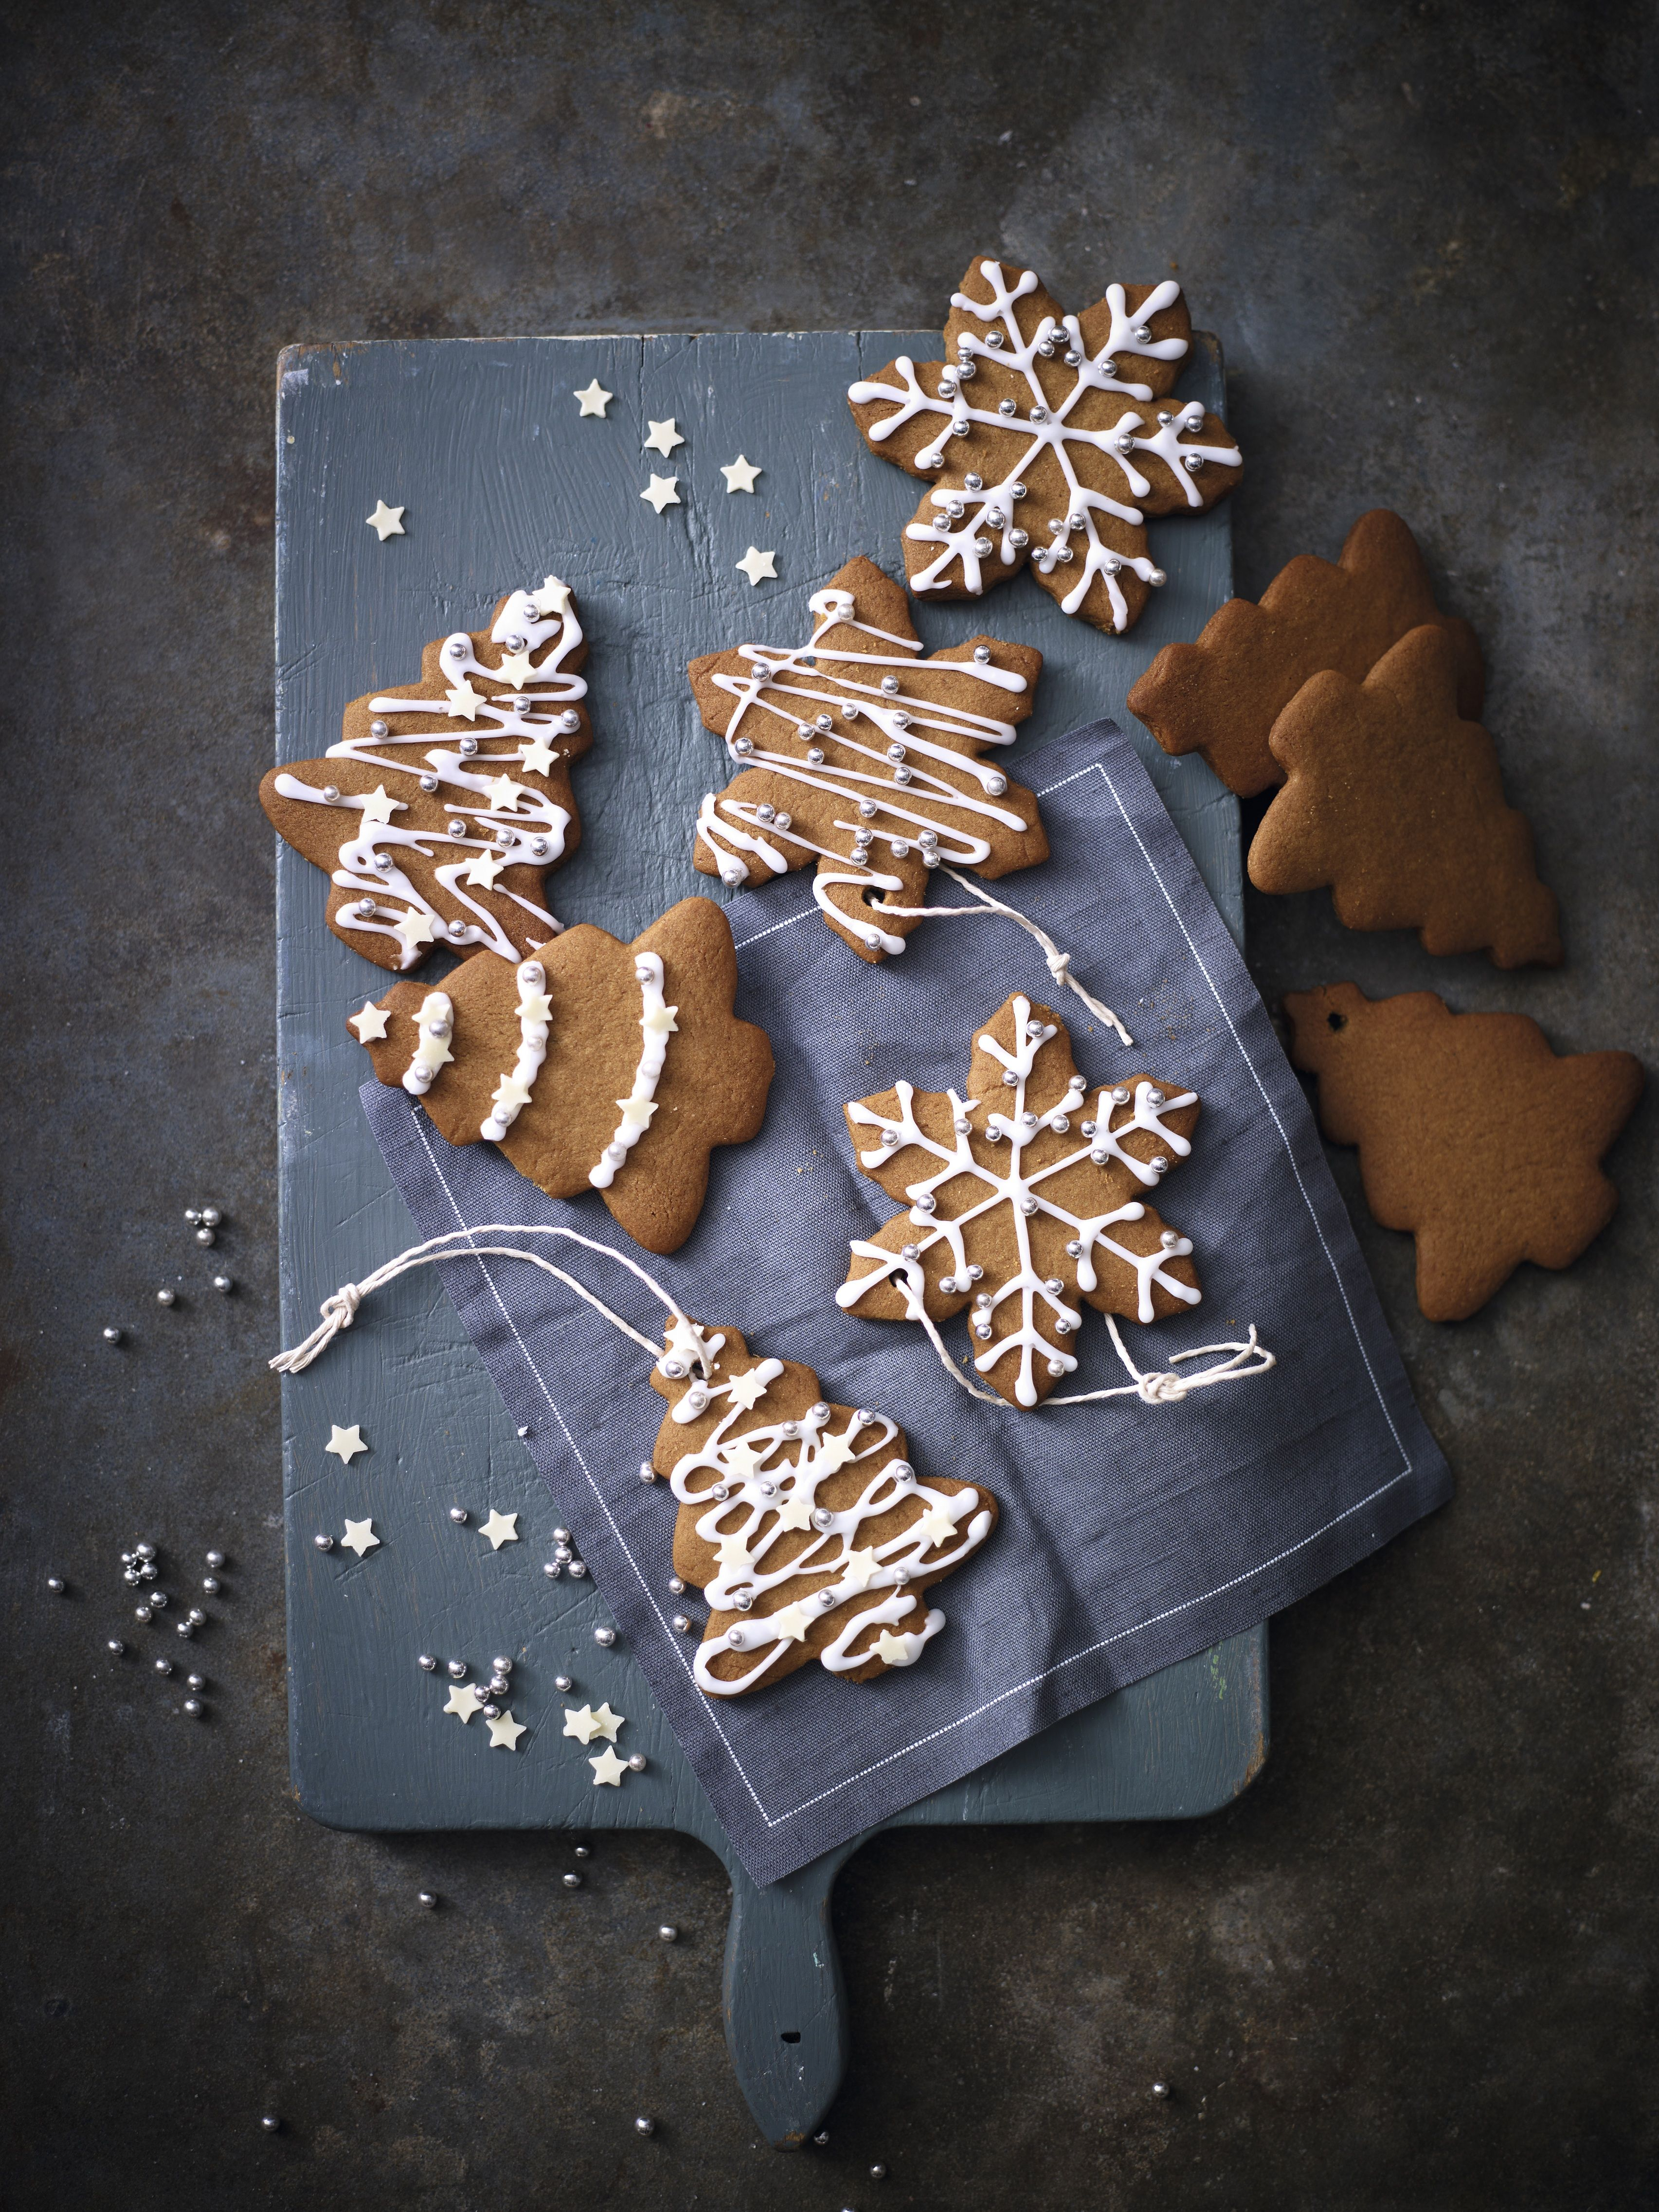 Nothing says Christmas quite like these gingerbread Christmas trees. Try this recipe: http://www.waitrose.com/home/christmaswithwaitrose/gingerbread.html?wtrint=1-Content-_-2-homepage-_-3-hero-_-4-banner-_-gingerbread